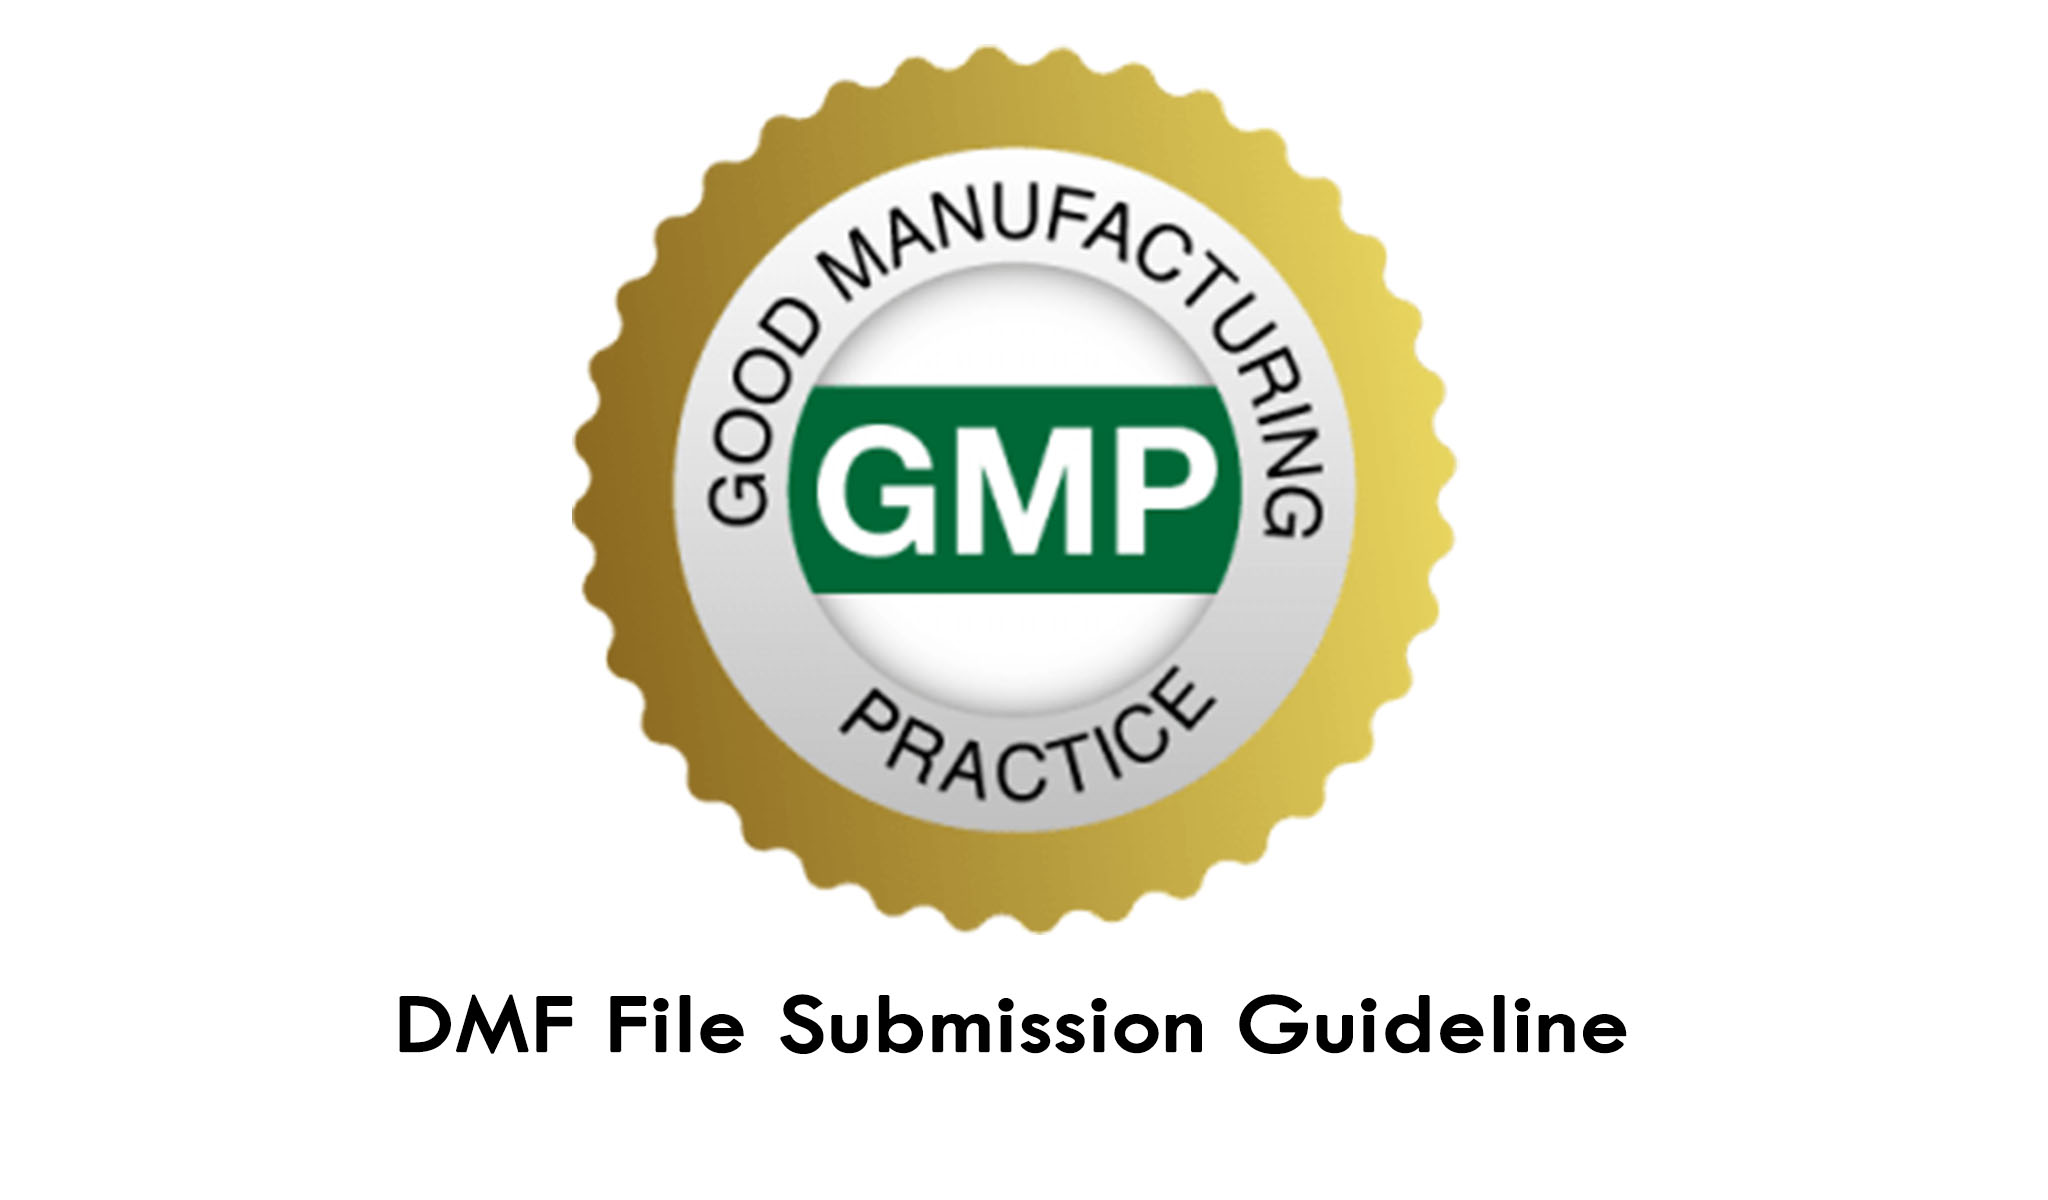 DMF File Submission Guideline